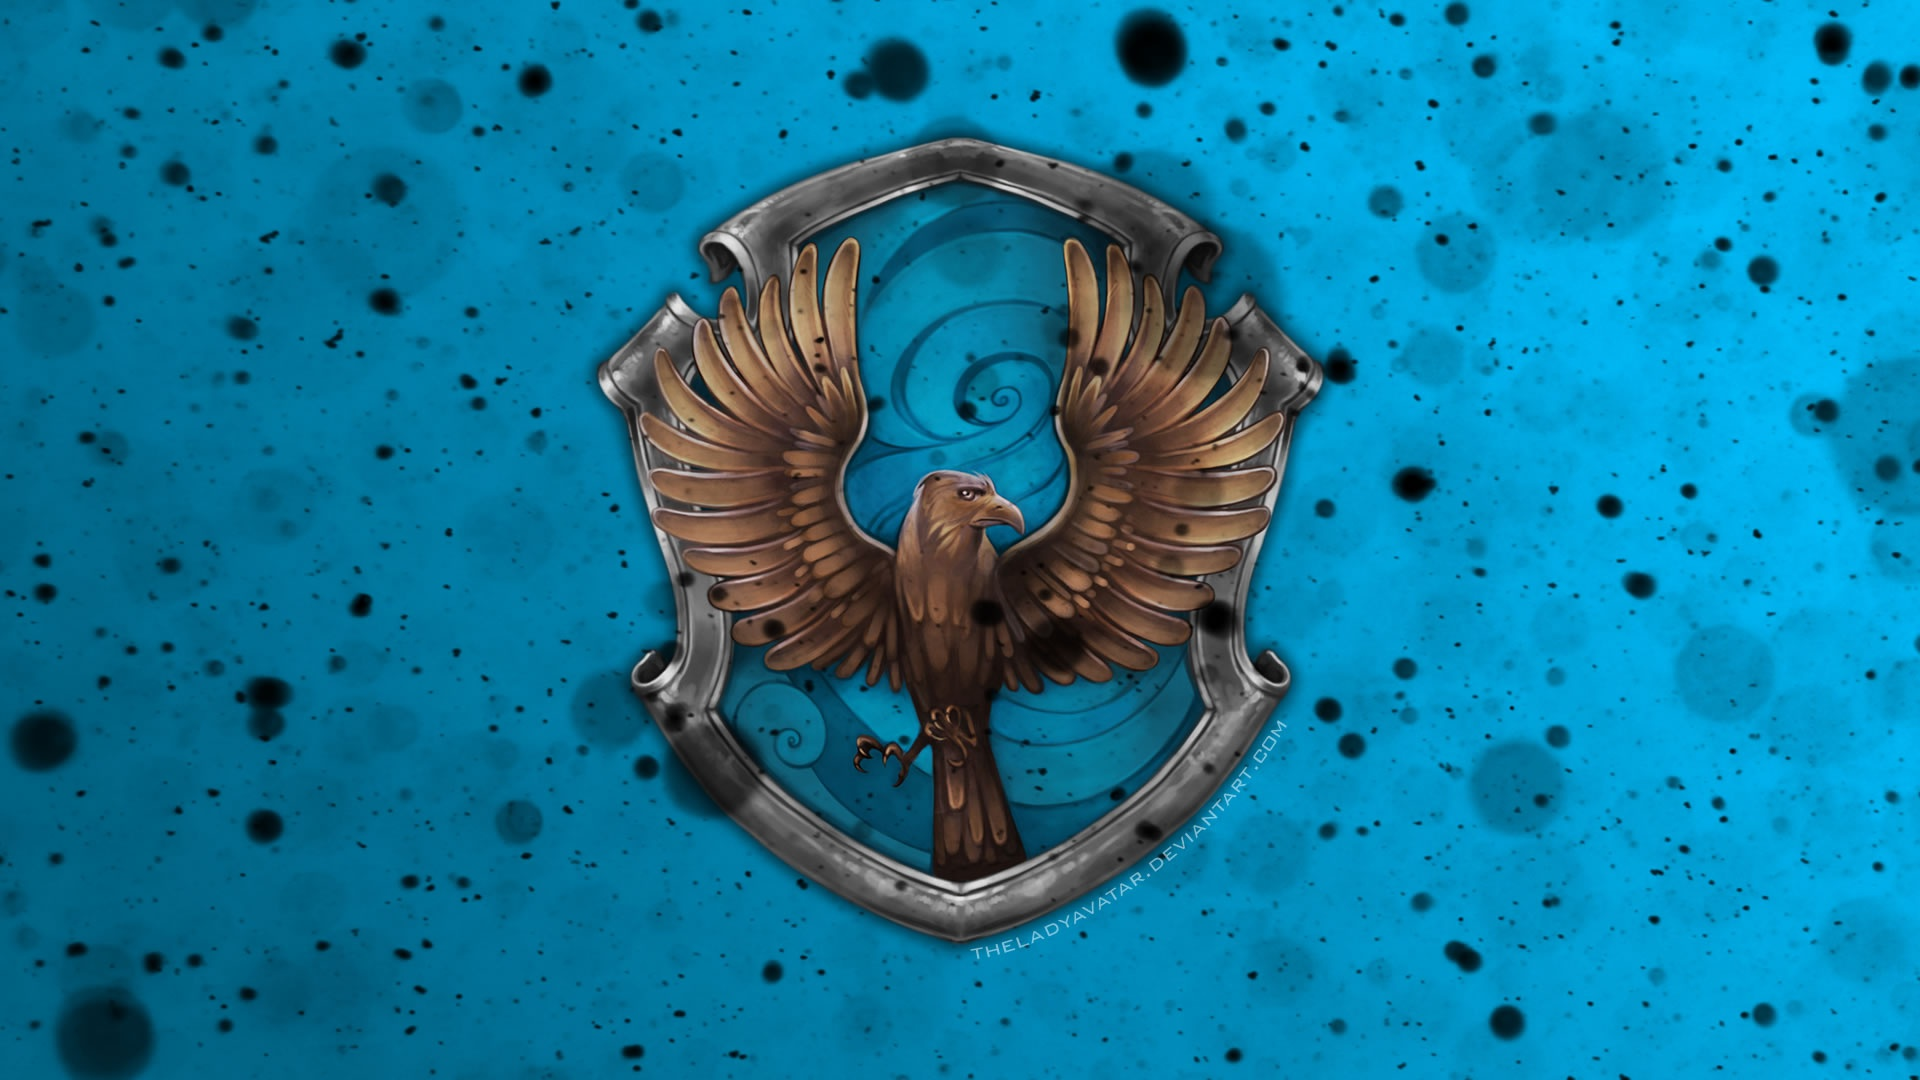 Download Wallpaper Eagle Harry Potter Coat Of Arms Eagle Harry